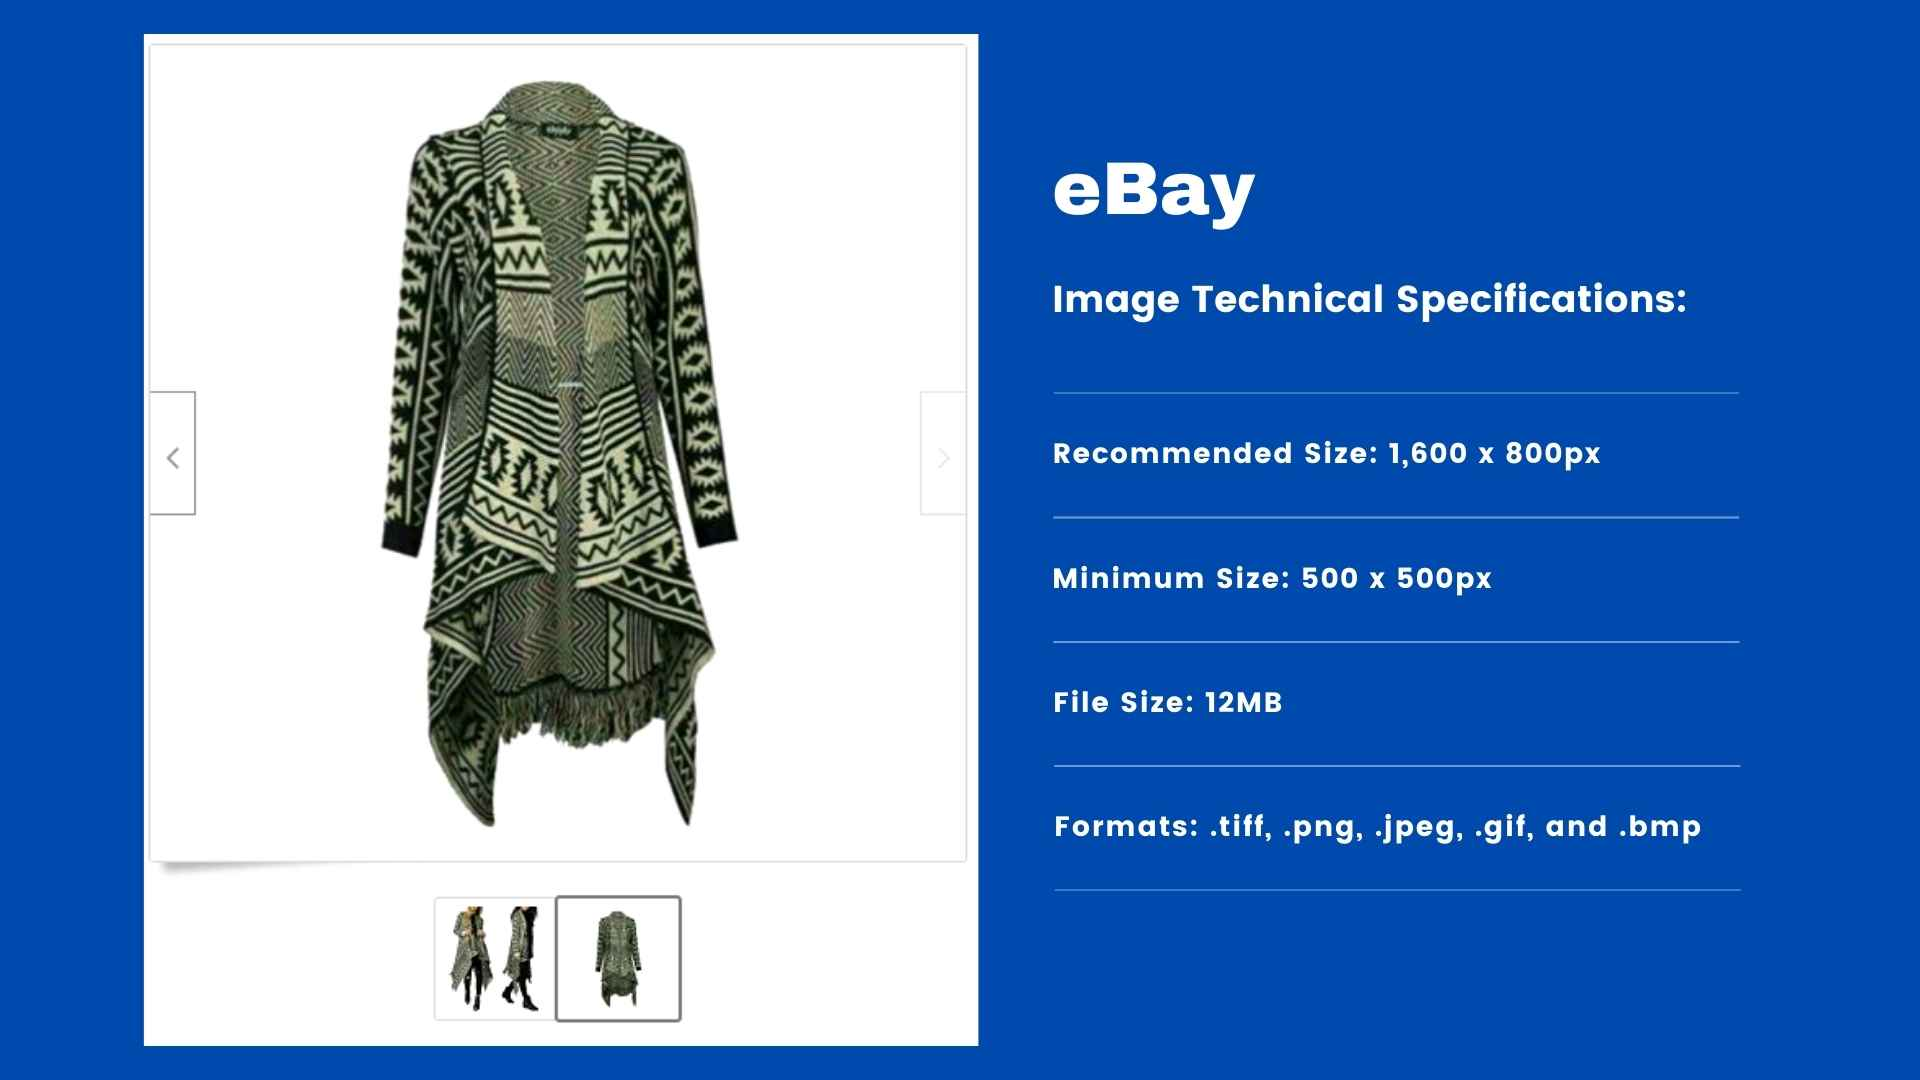 eBay - Product Image Requirements